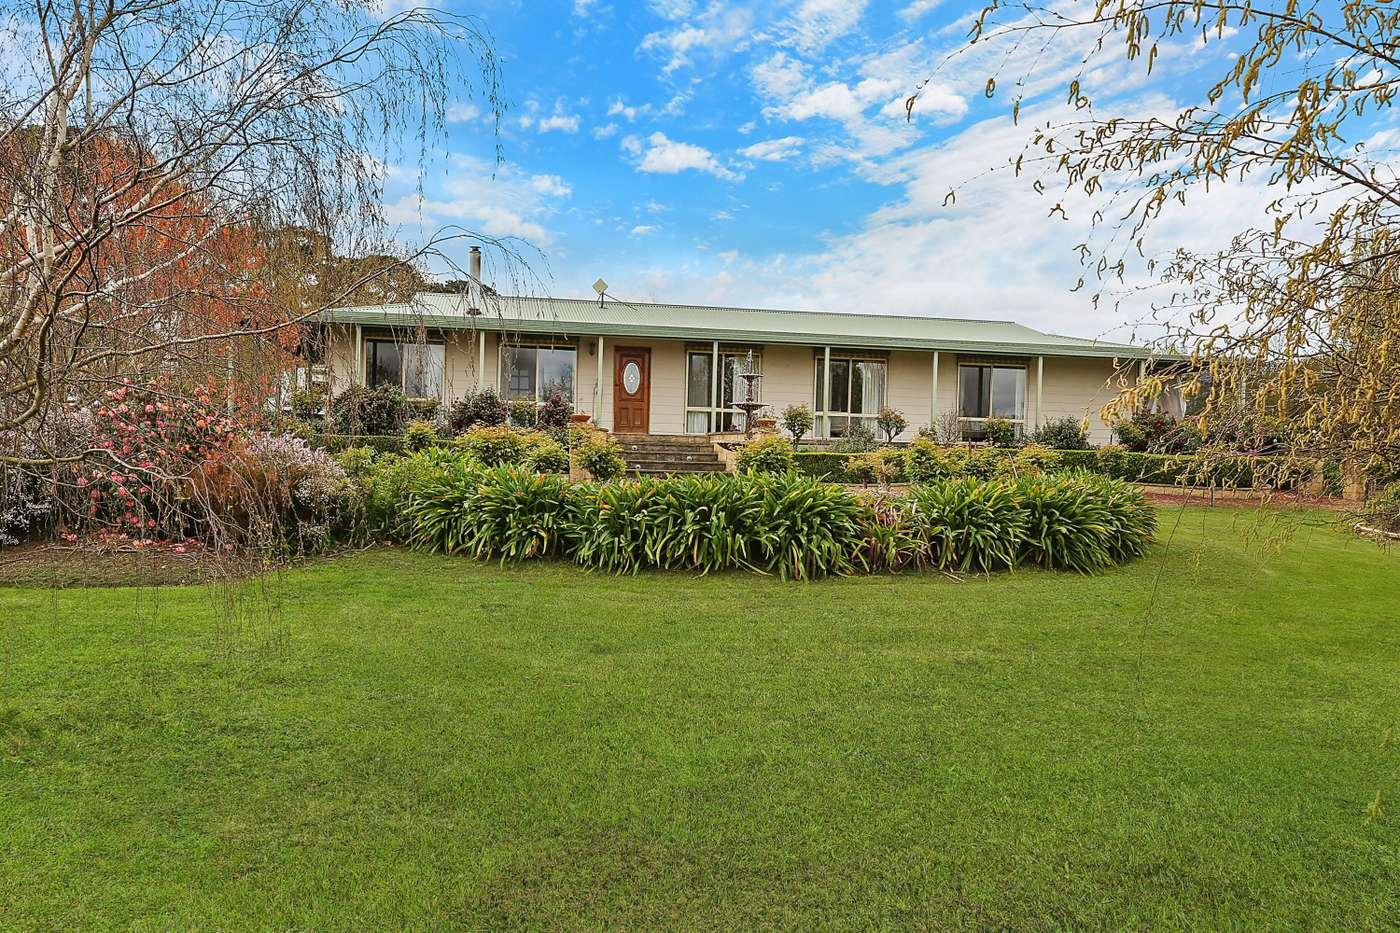 Main view of Homely rural listing, 55 Whites Road, Camperdown, VIC 3260